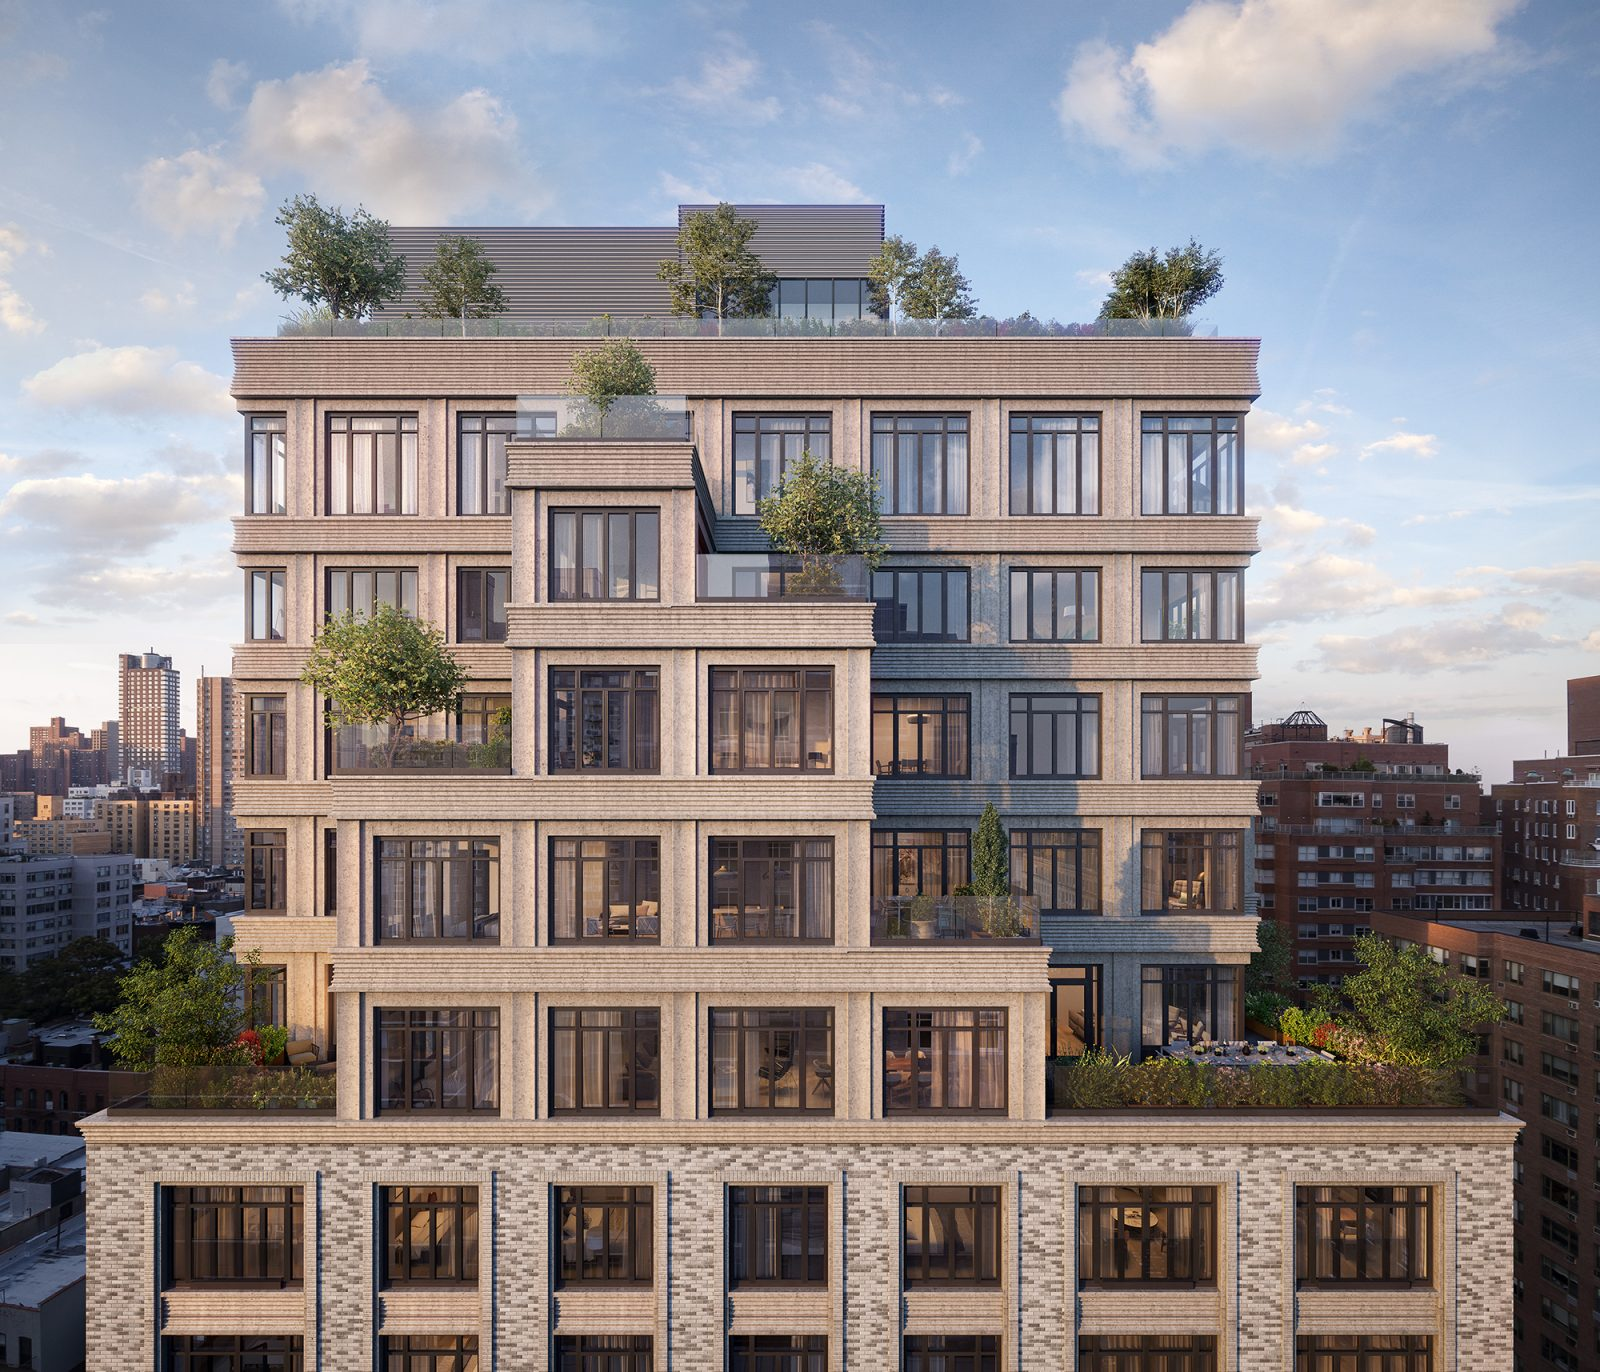 Condo Rentals In Nyc: 40 East End Avenue And Its Classically-Inspired Exterior